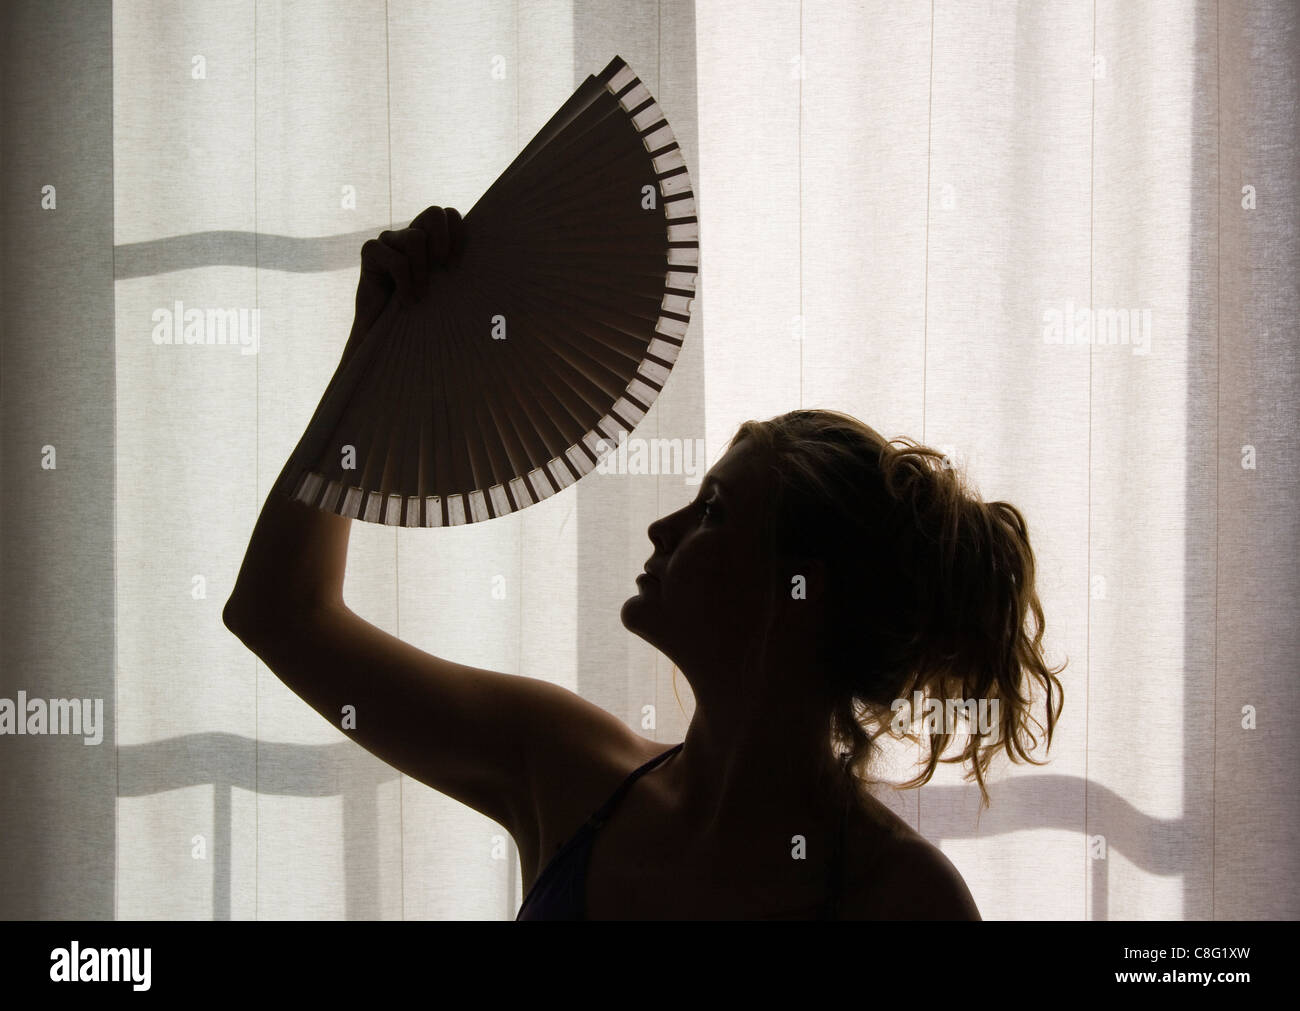 Silhouette of young woman with fan. - Stock Image